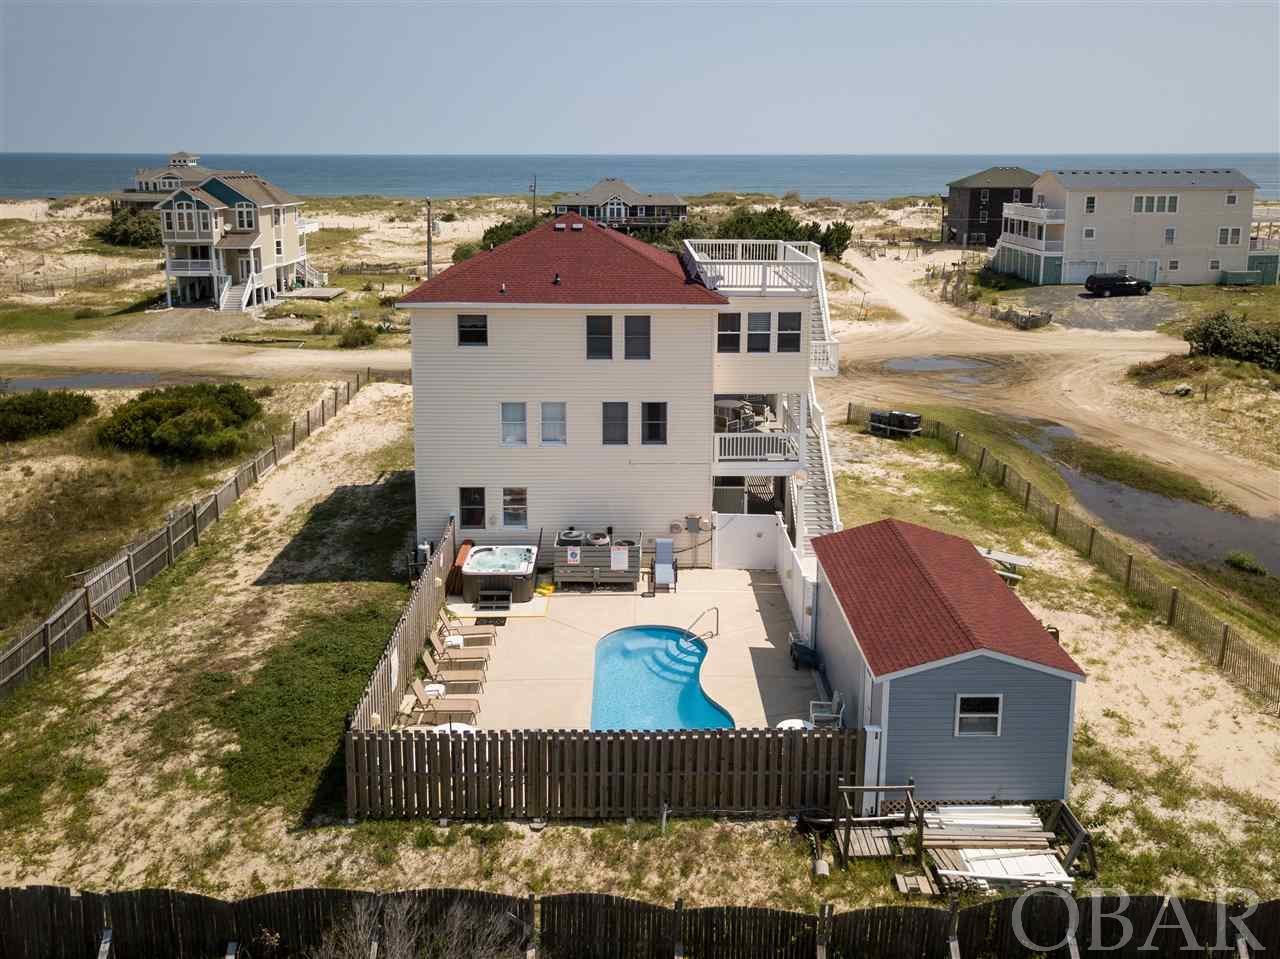 1674 Sandpiper Road, Corolla, NC 27927, 4 Bedrooms Bedrooms, ,3 BathroomsBathrooms,Residential,For sale,Sandpiper Road,101984